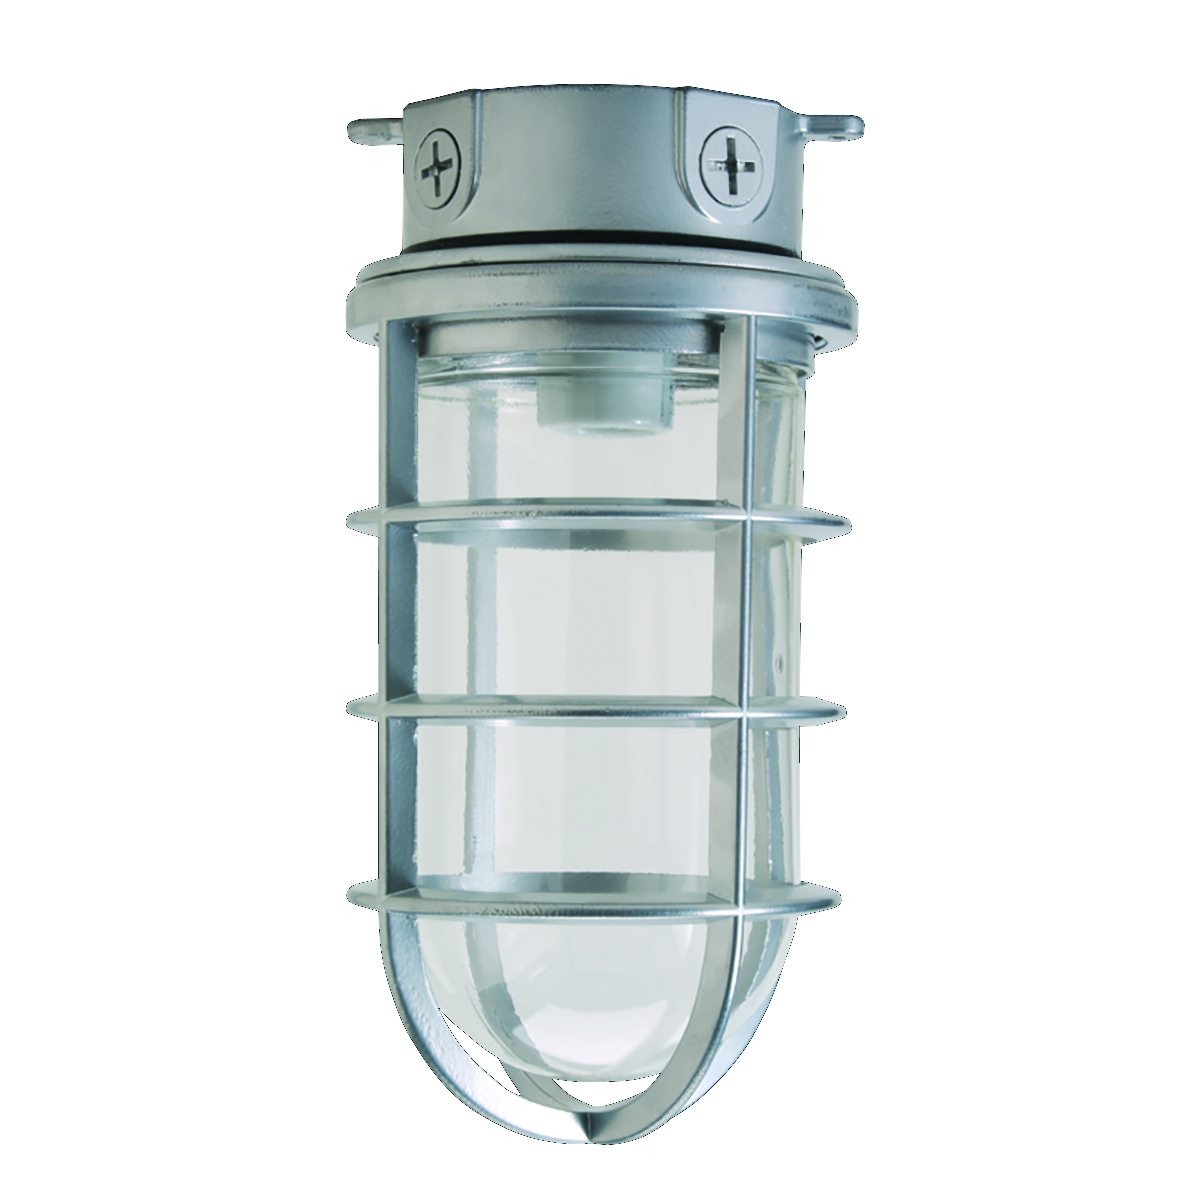 Hubbell® Industrial Lighting VP-1